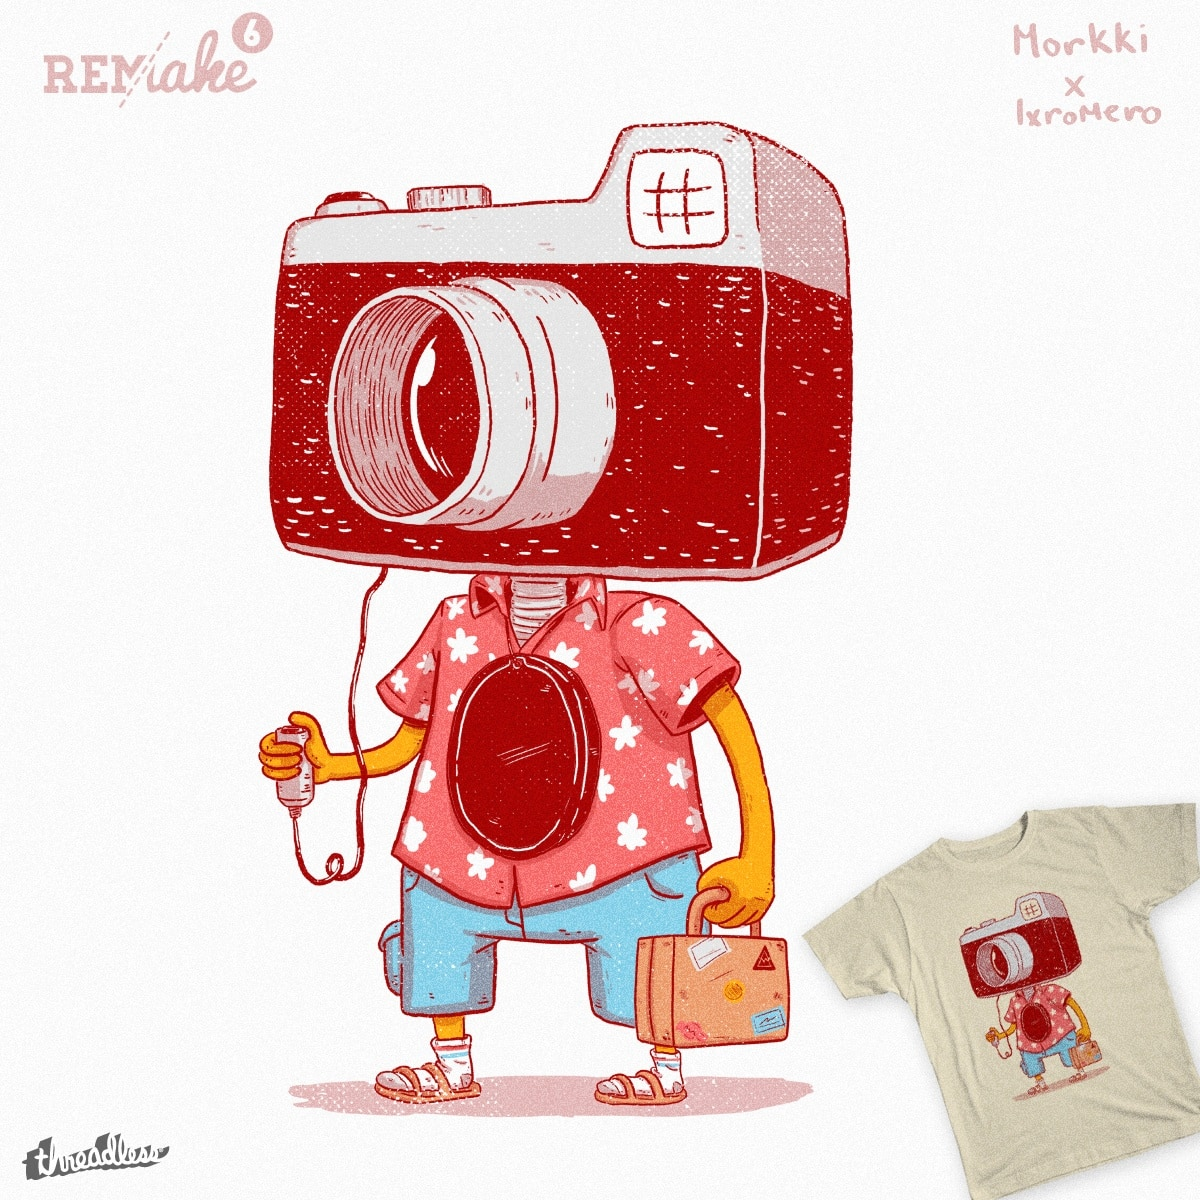 The Tourist by lxromero and Morkki on Threadless